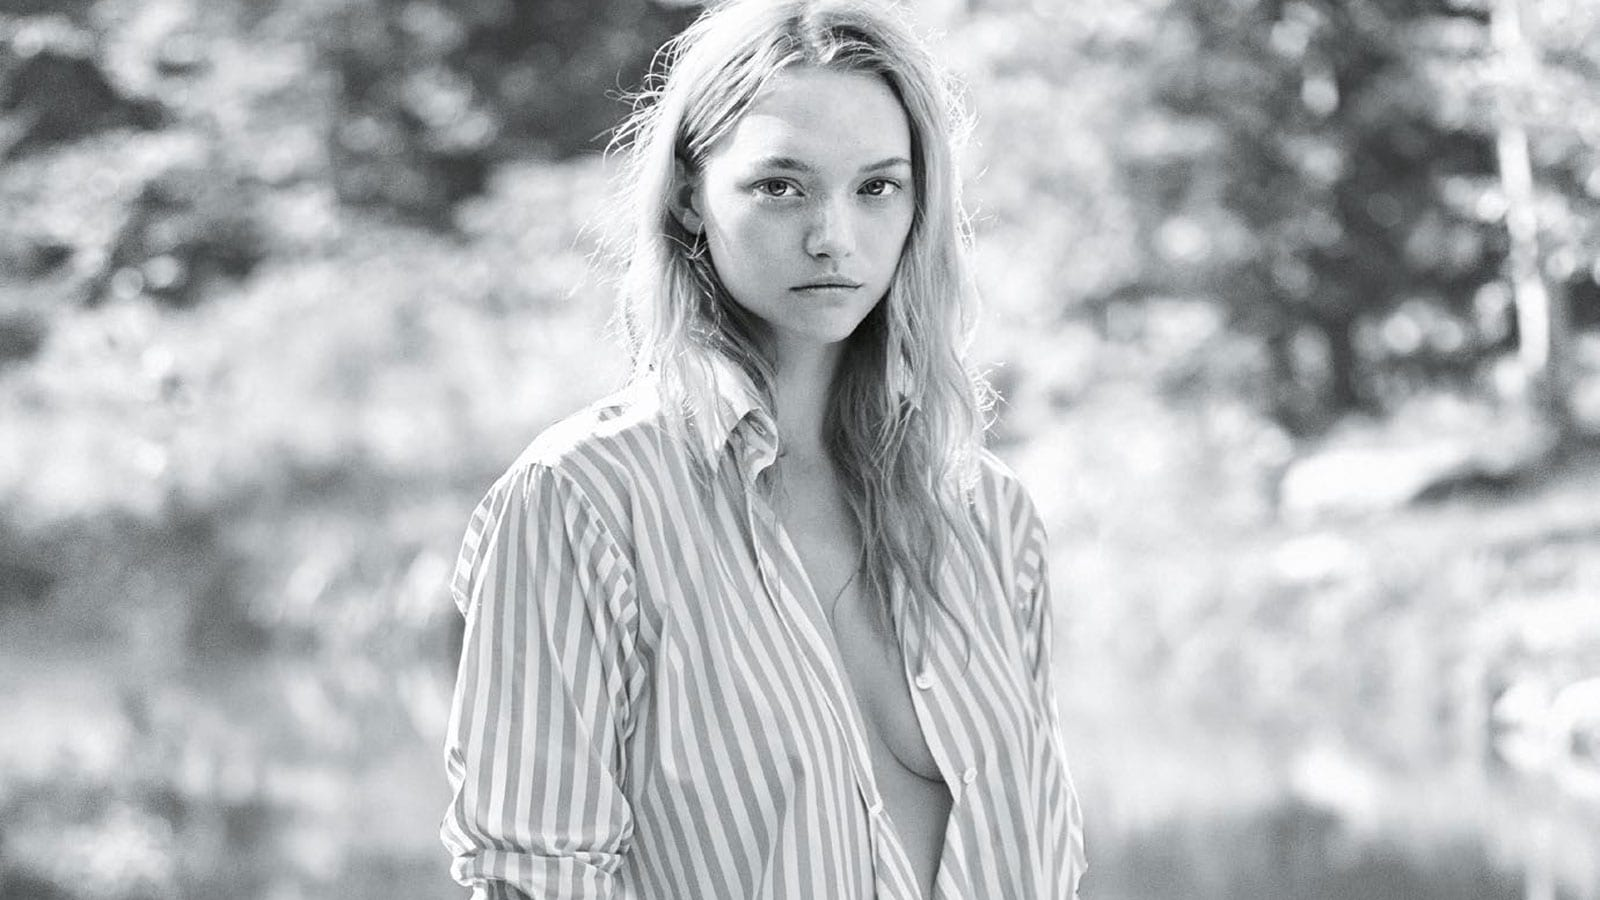 Style&Minimalism | Editorials | January 2016 | Vogue Australia | Gemma Ward by Lachlan Bailey